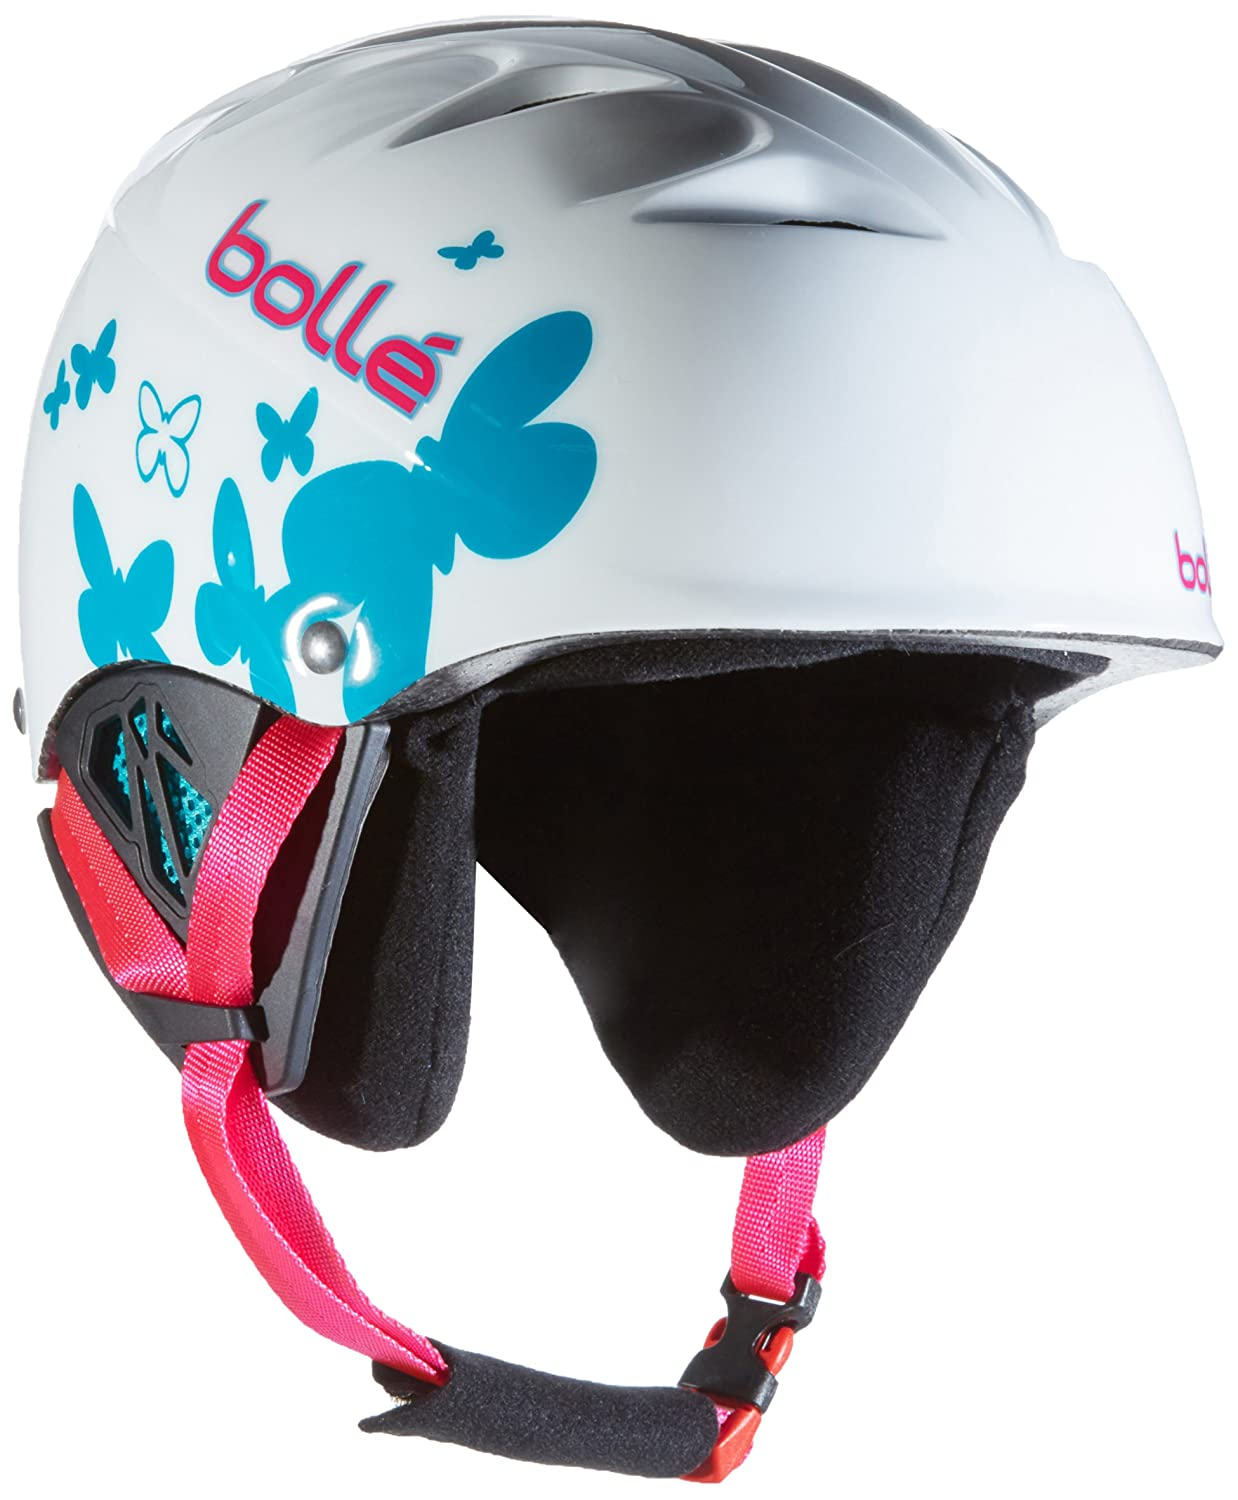 Bollé Casco de esquí B de Kid Shiny White Butterfly  –  cm